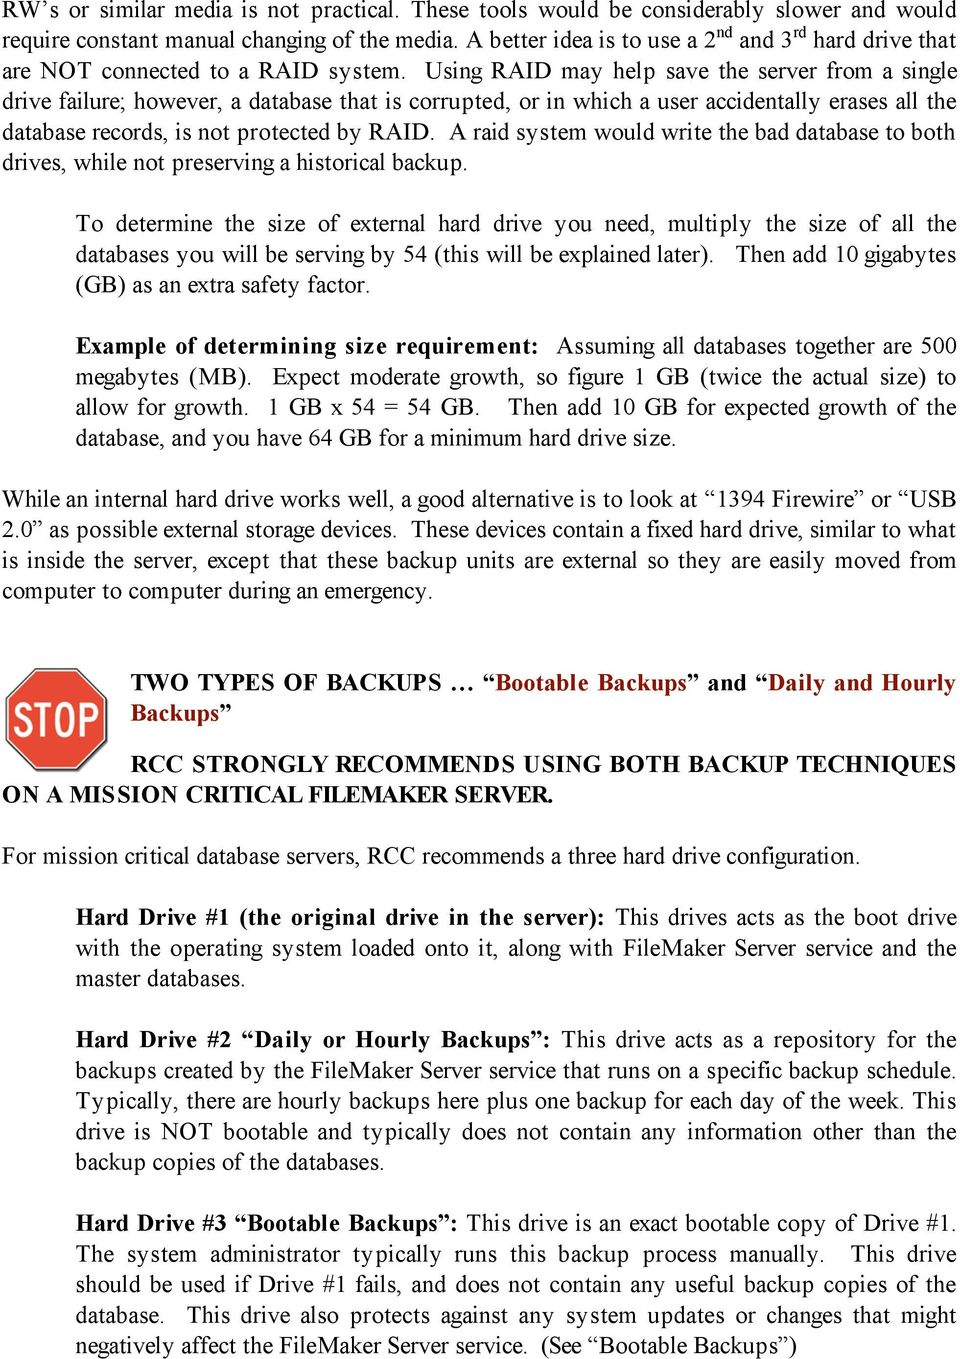 Using RAID may help save the server from a single drive failure; however, a database that is corrupted, or in which a user accidentally erases all the database records, is not protected by RAID.